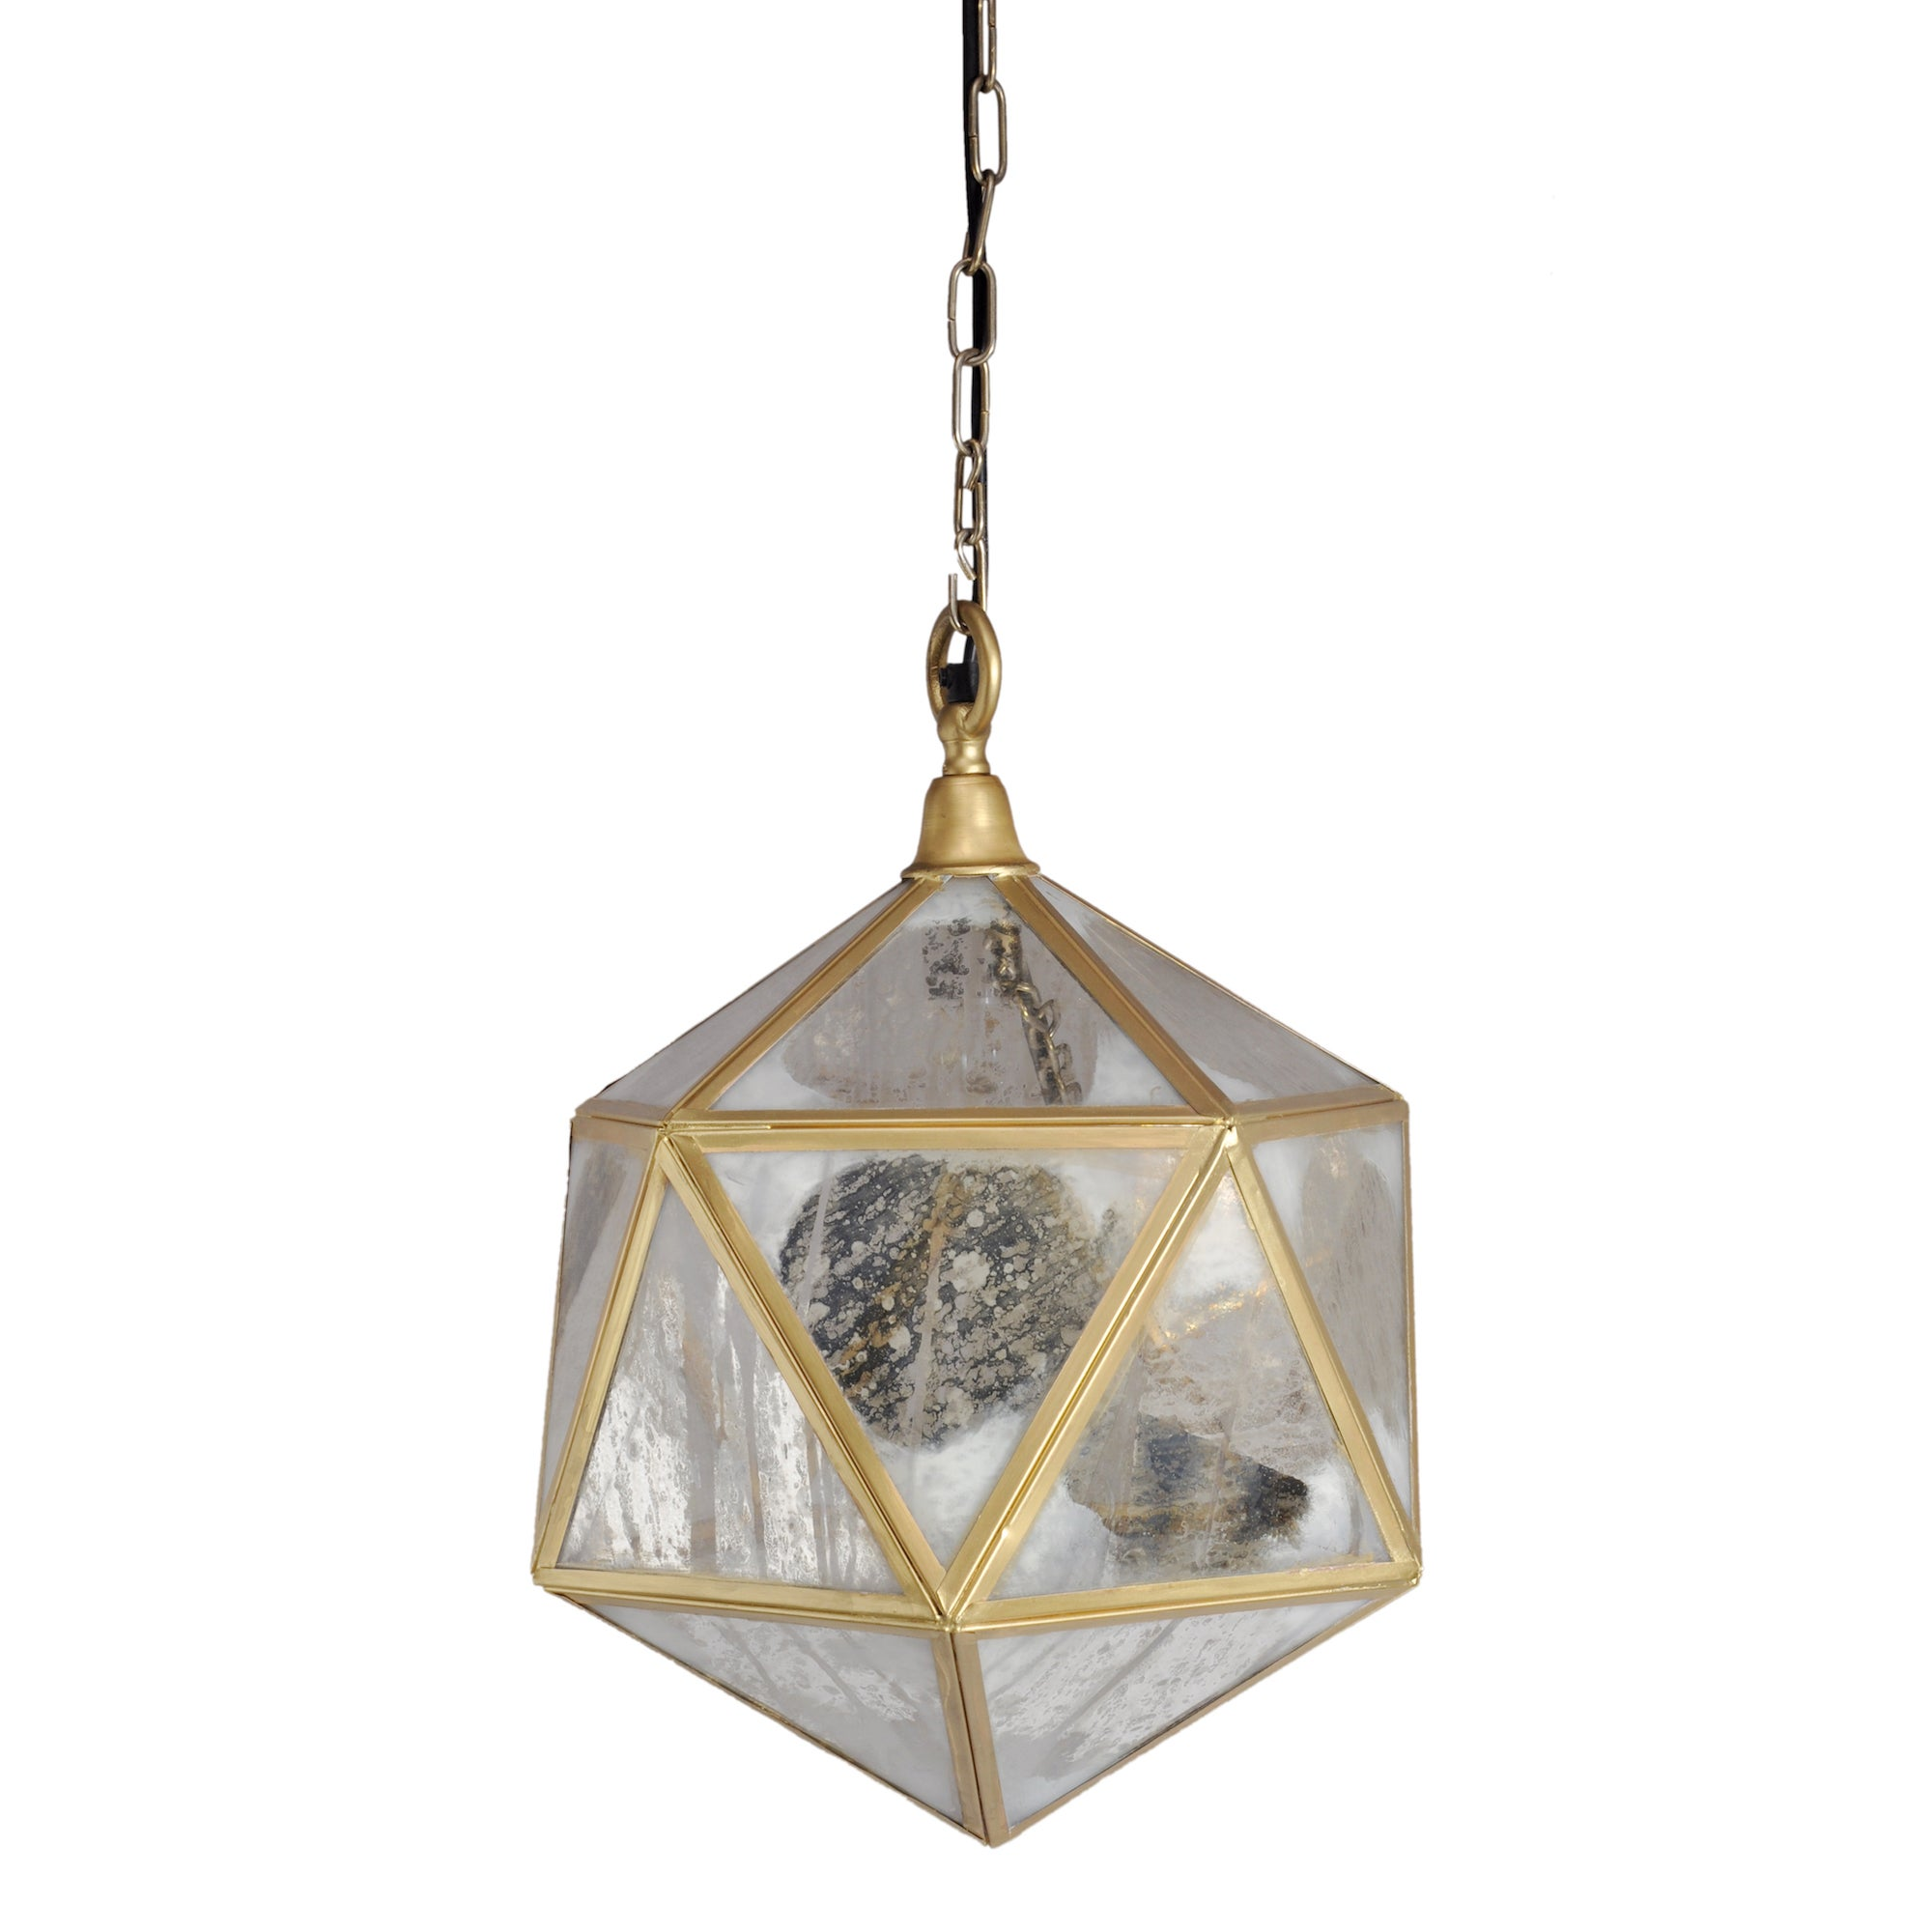 Horizon Mercury Glass Aged Bronze Prism Pendant Light